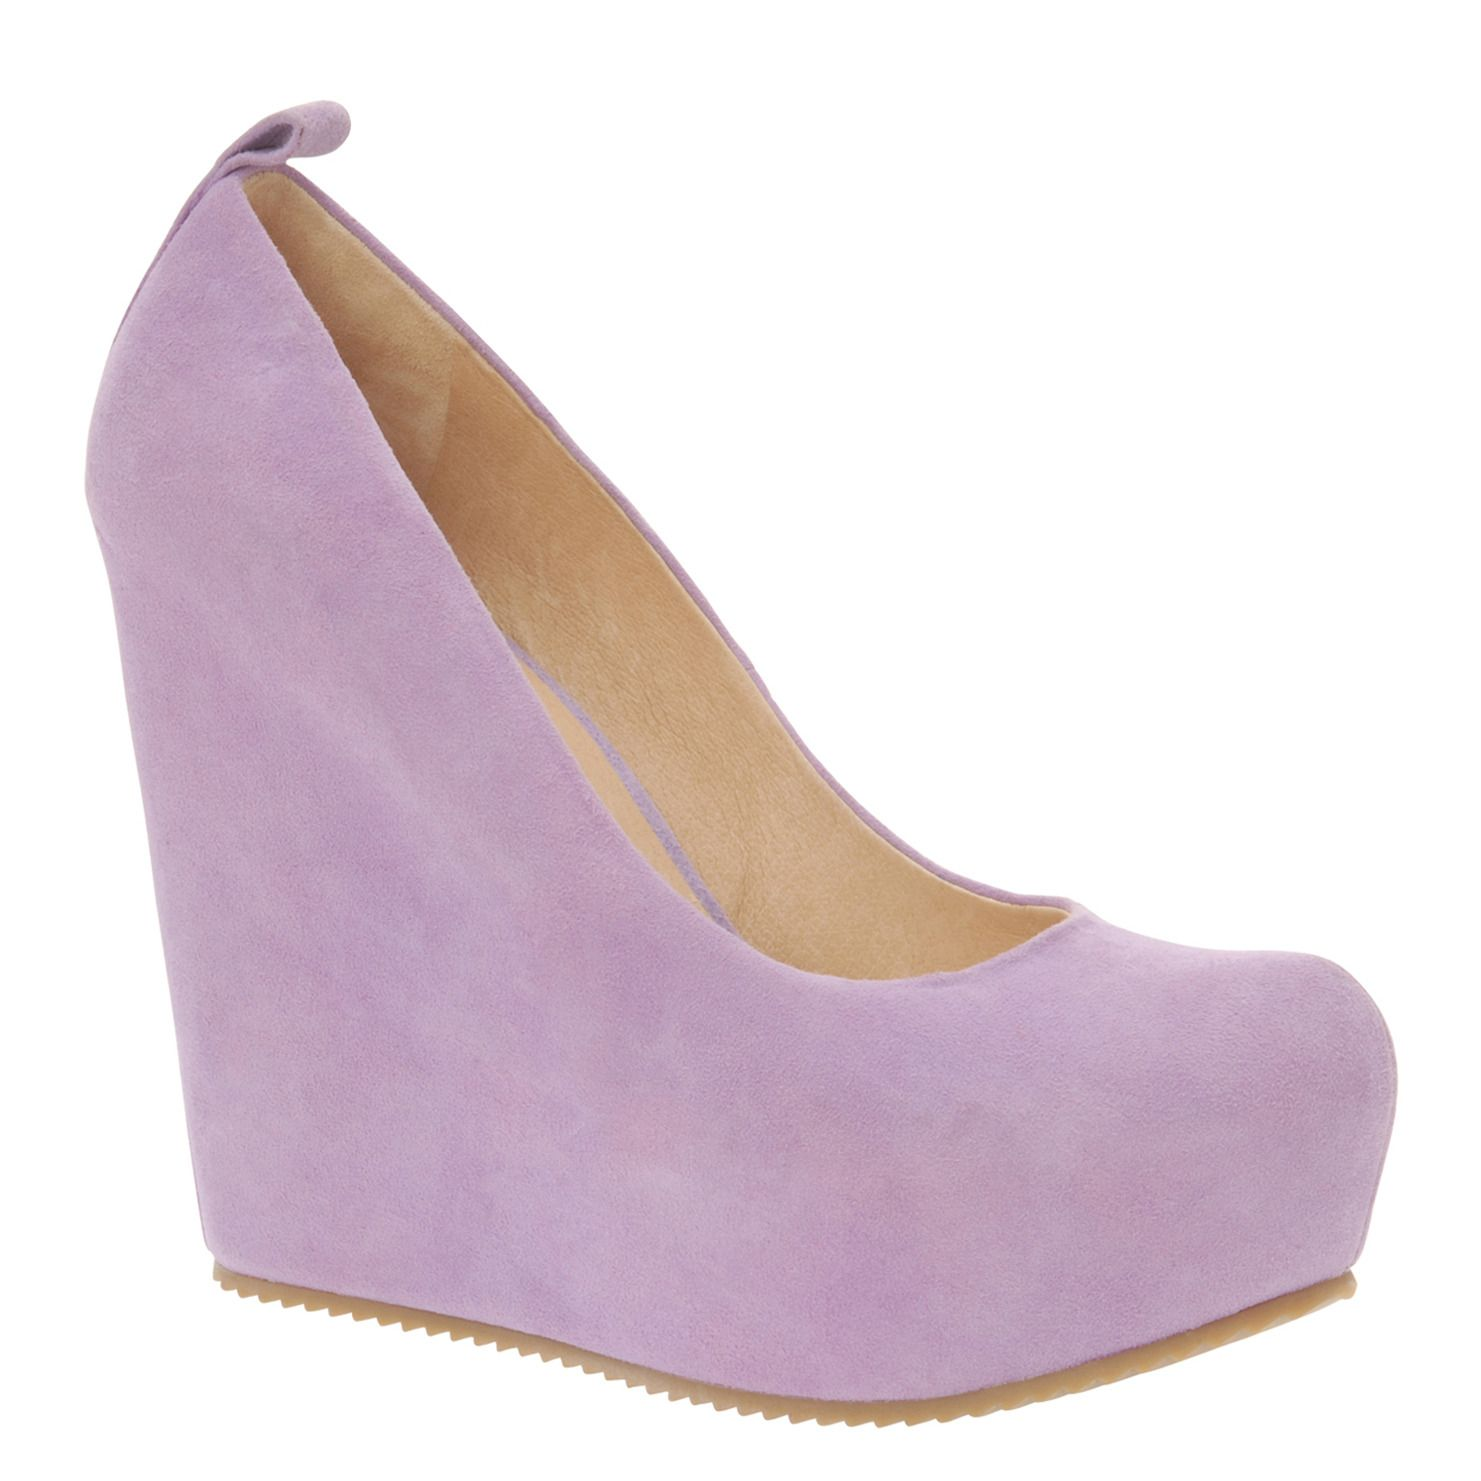 84eff4e4201 I think my heart just skipped a beat! Love these Lilac Wedges from Aldo